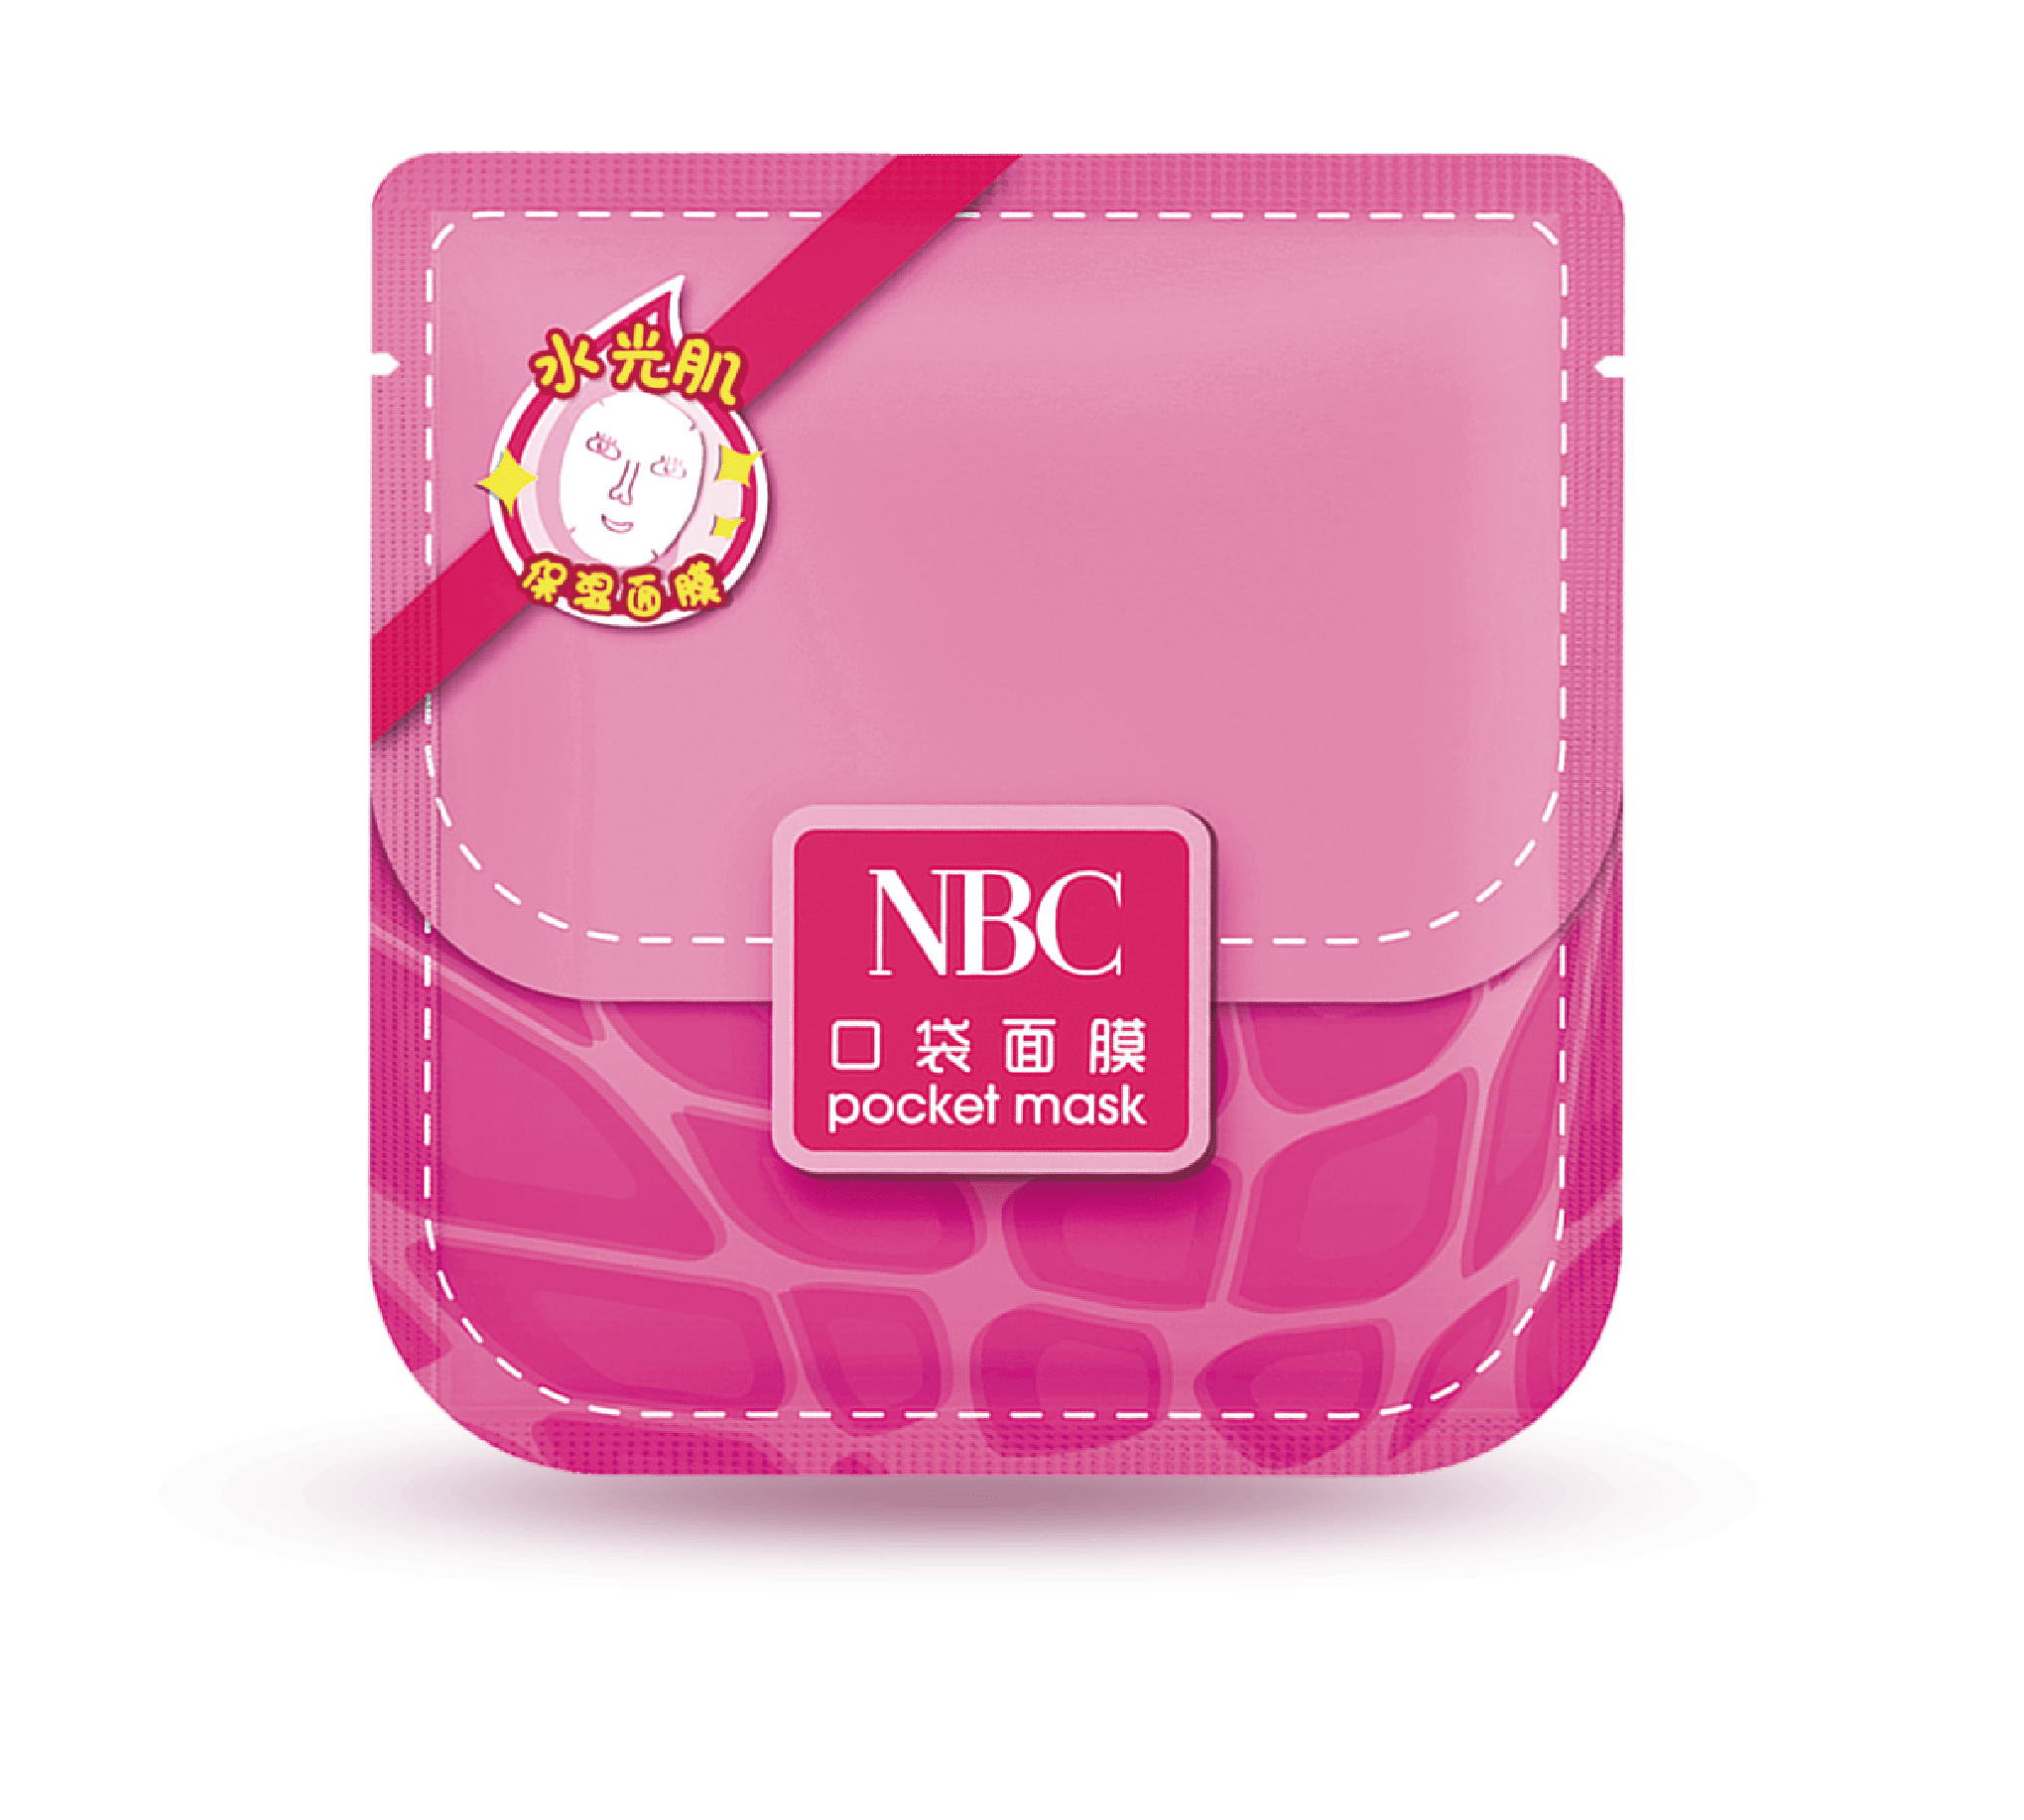 NOX BELLCOW-Facial Mask Skin Care Products | Pocket Mask - Nox Bellcow-2